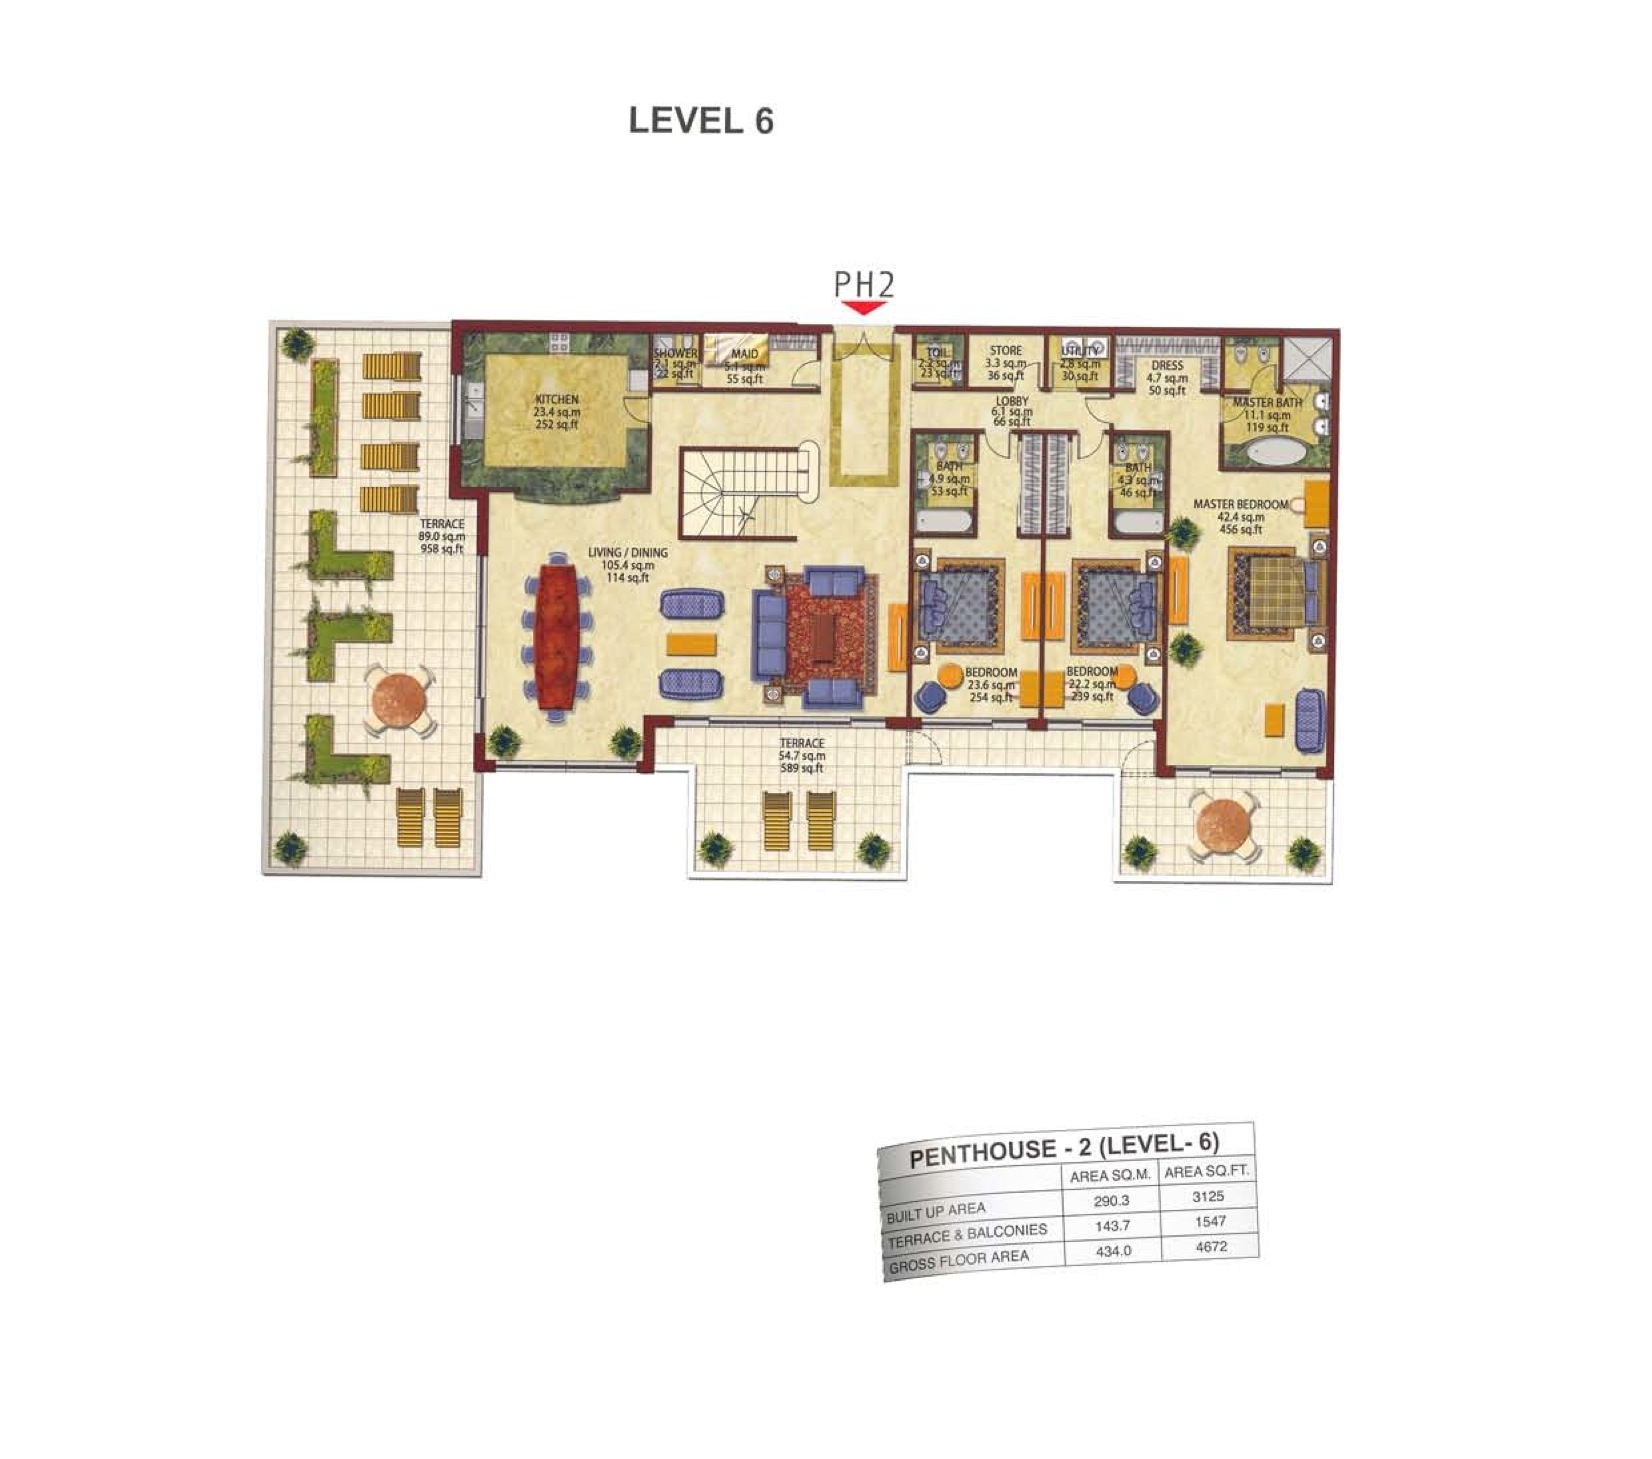 Kempinski residences floor plans palm jumeirah dubai for Floor plans jumeirah heights